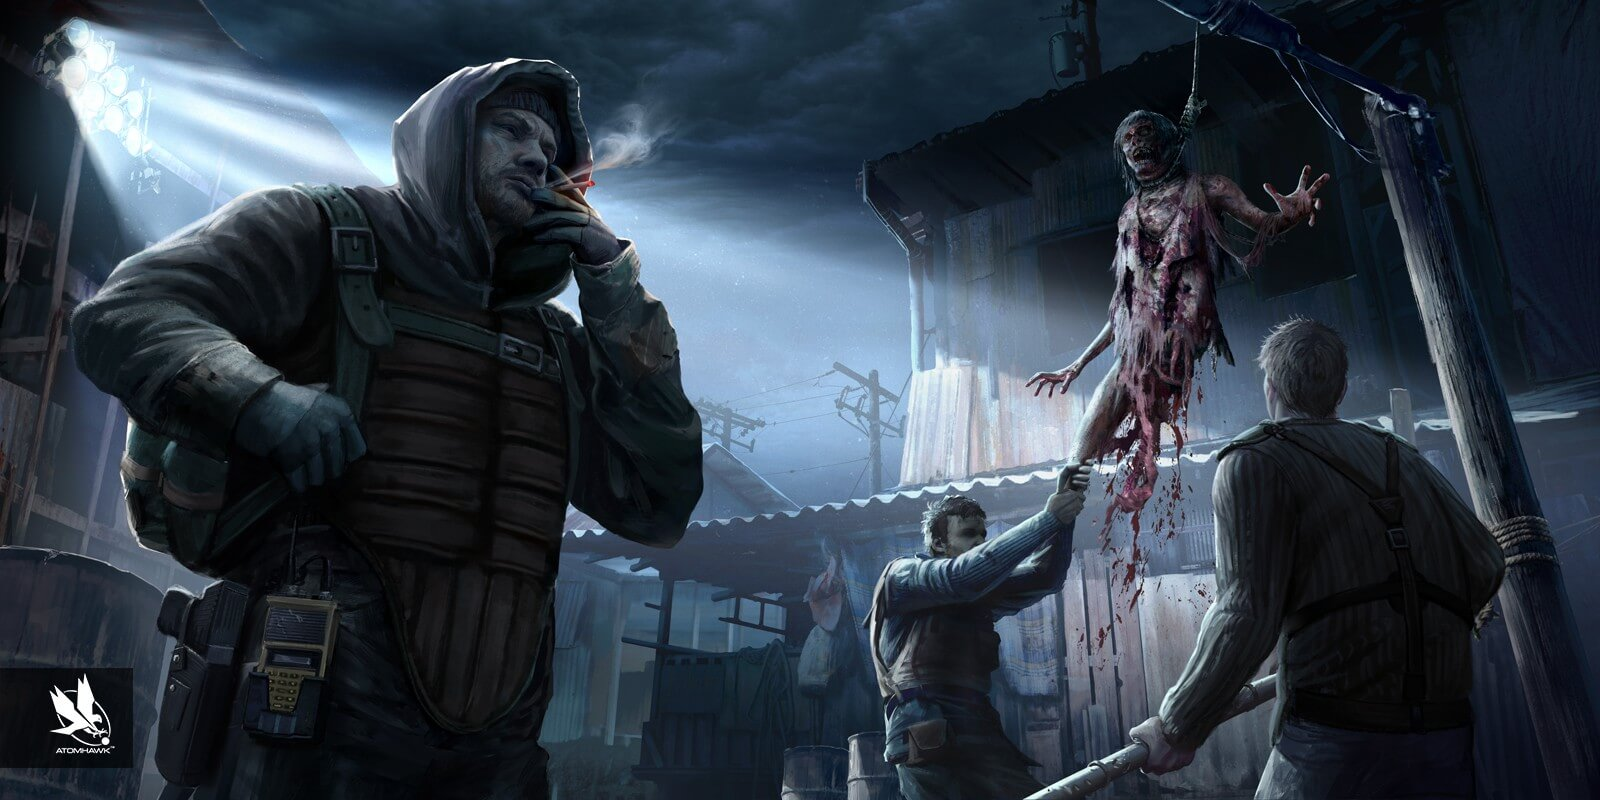 Atomhawk_Starbreeze_Overkills-The-Walking-Dead_Concept-Art_Key-Moment_Cinematic-Illustration-4.jpg